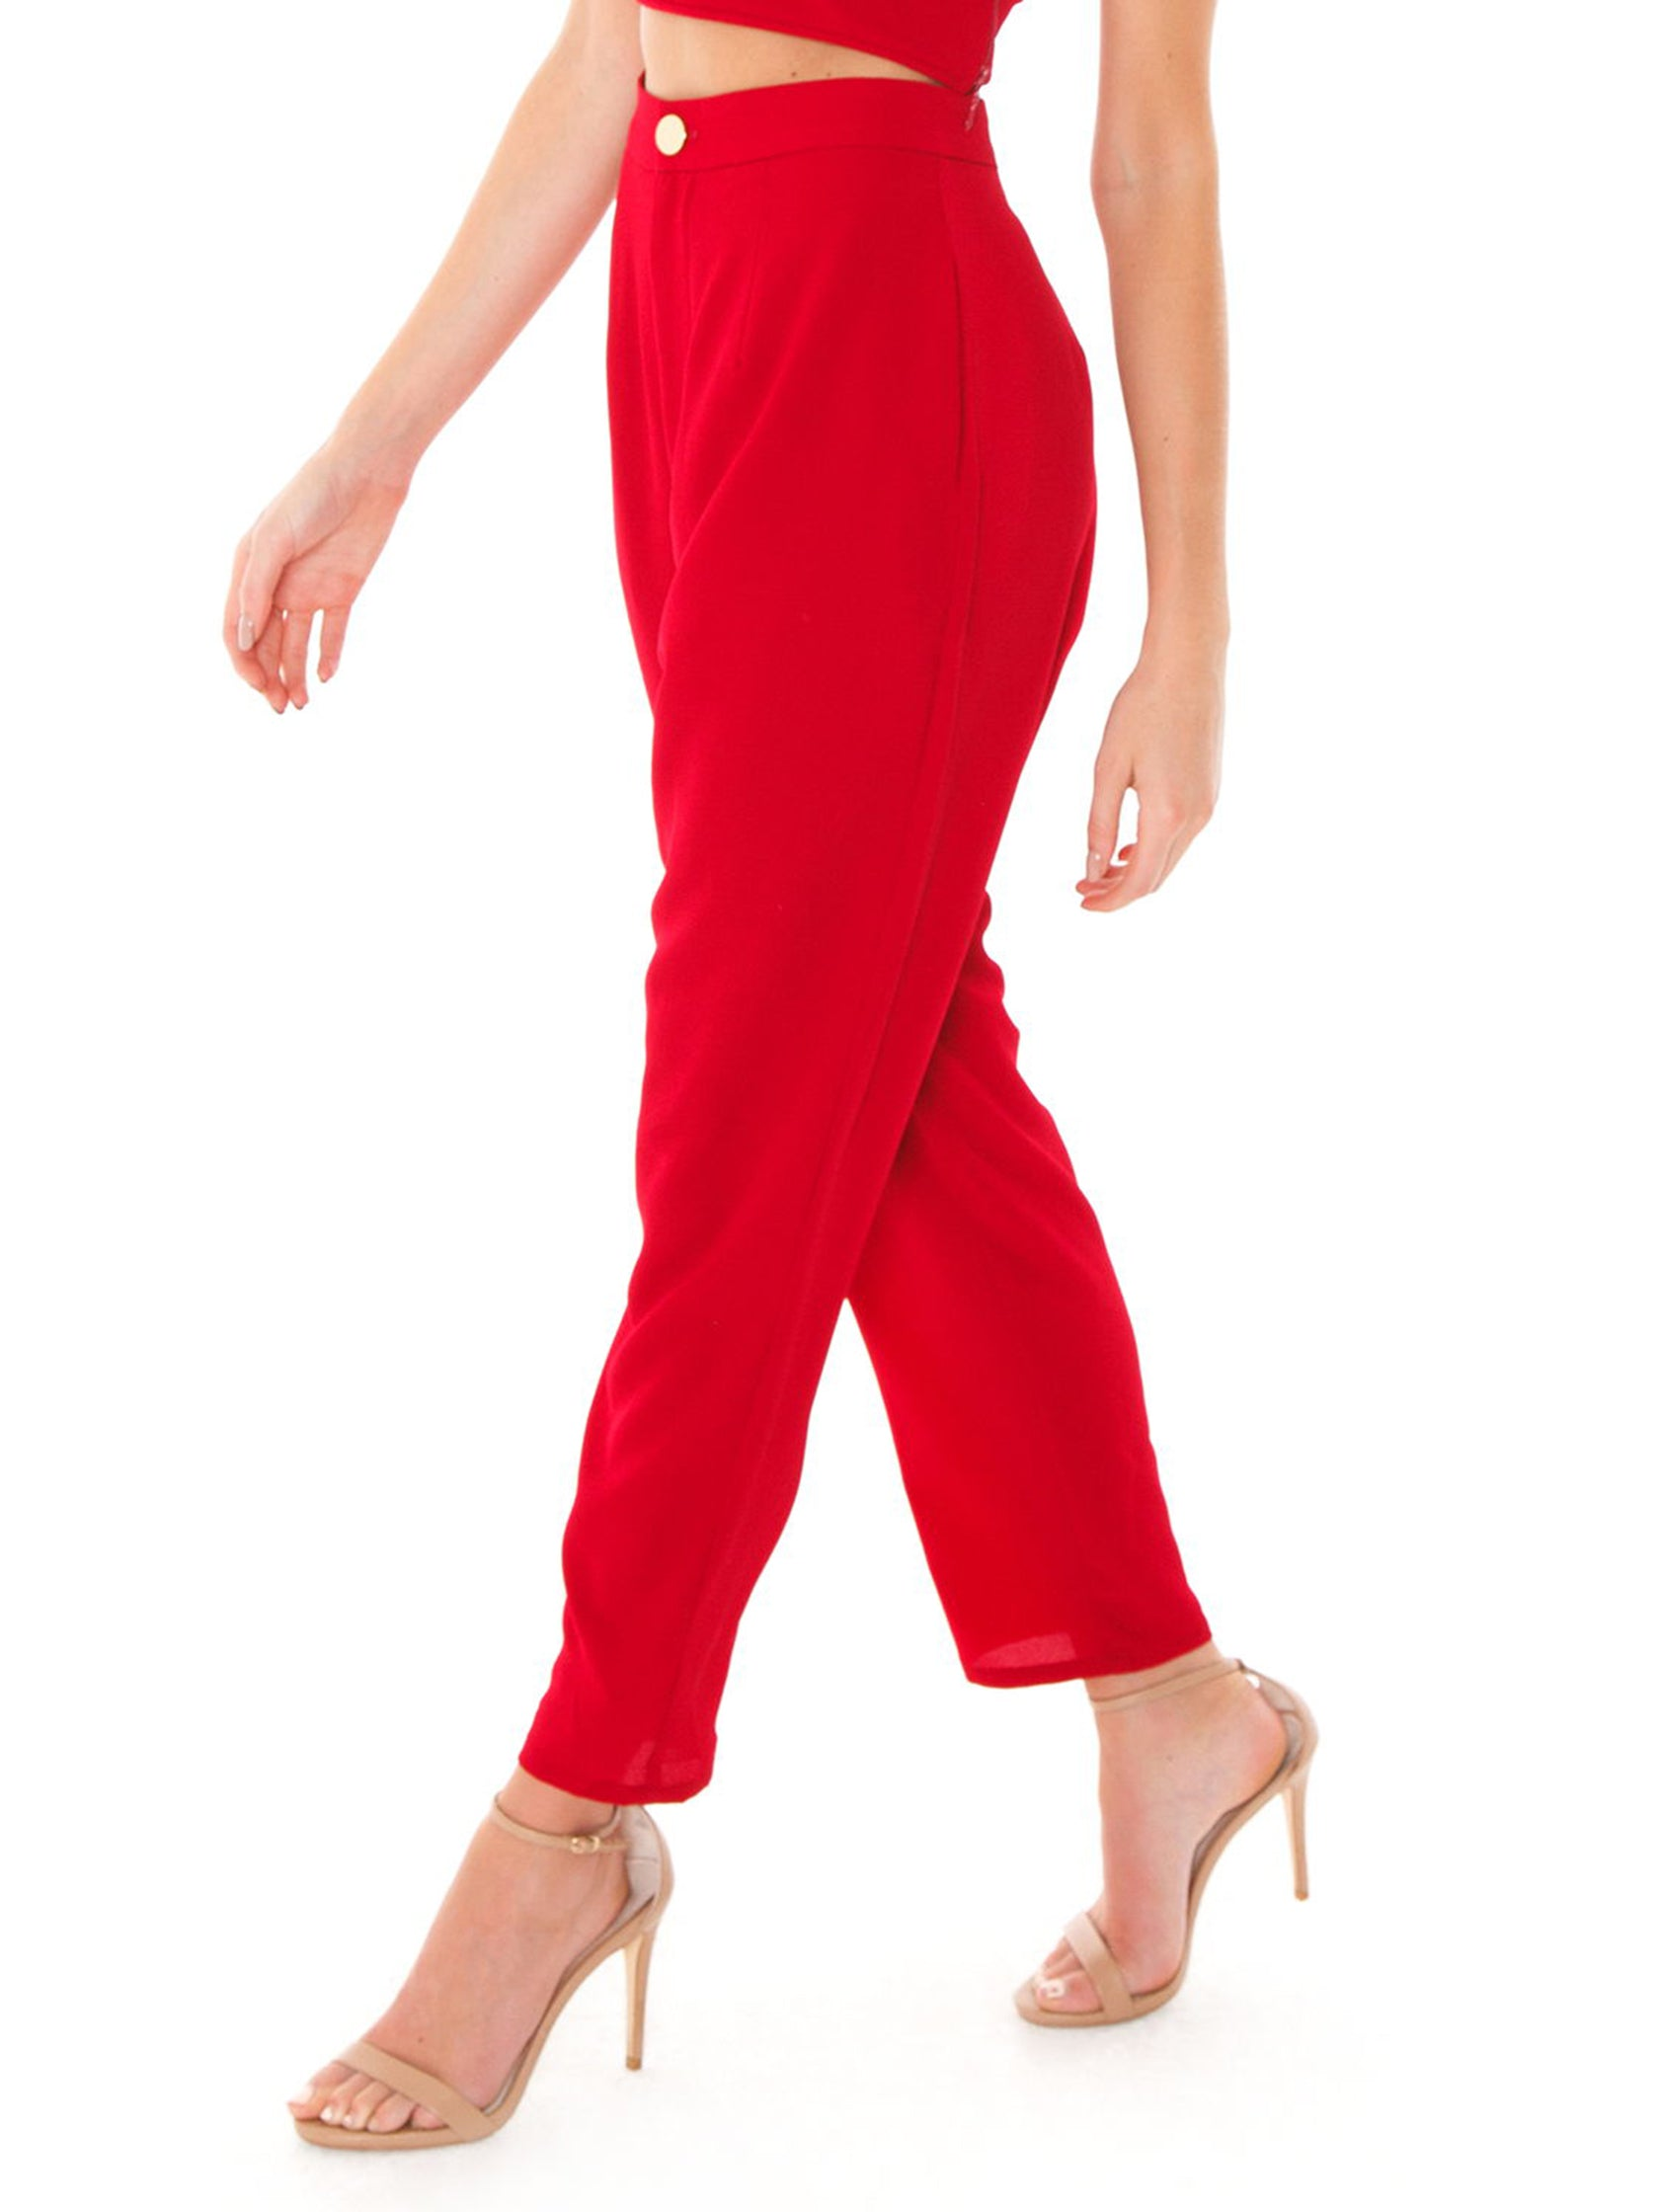 Women wearing a pants rental from Show Me Your Mumu called Hepburn Pants